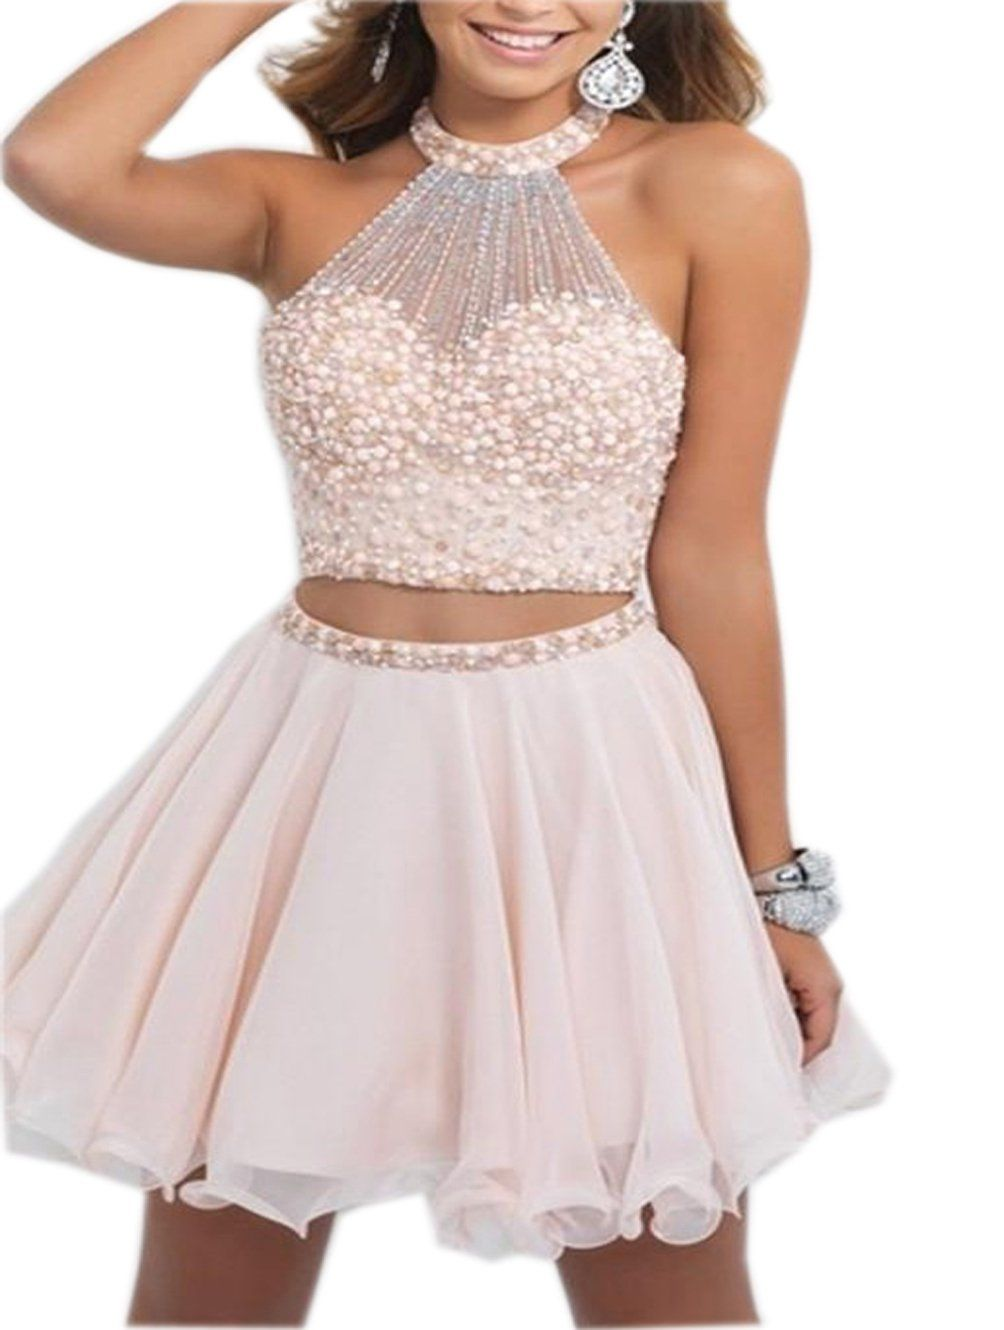 ALW Two Pieces Short Homecoming Dress with Beads Prom Gown ALW142PK-US2